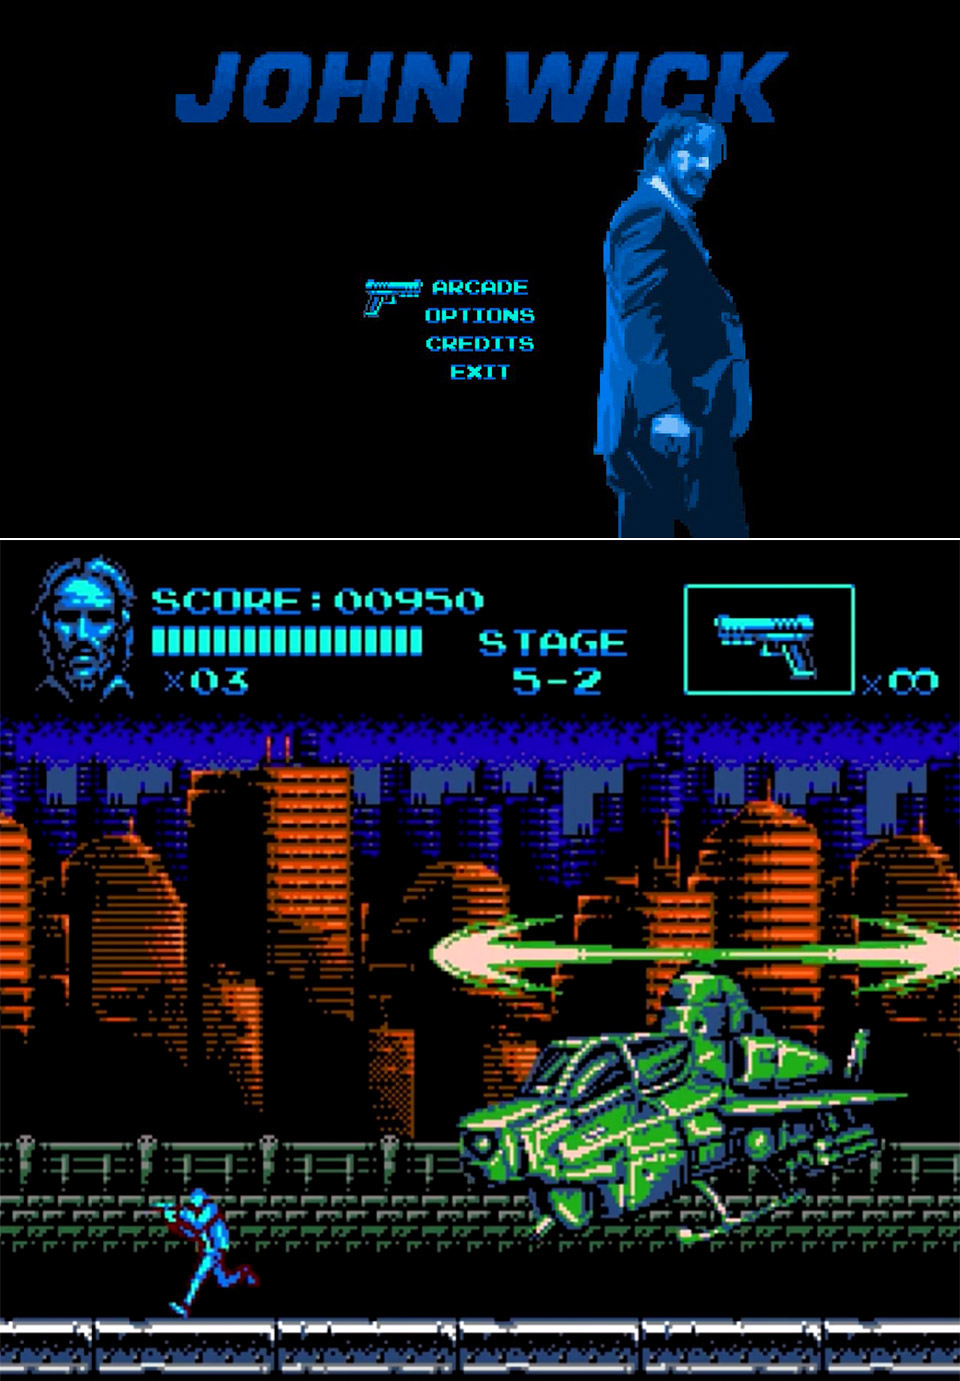 John Wick NES Game